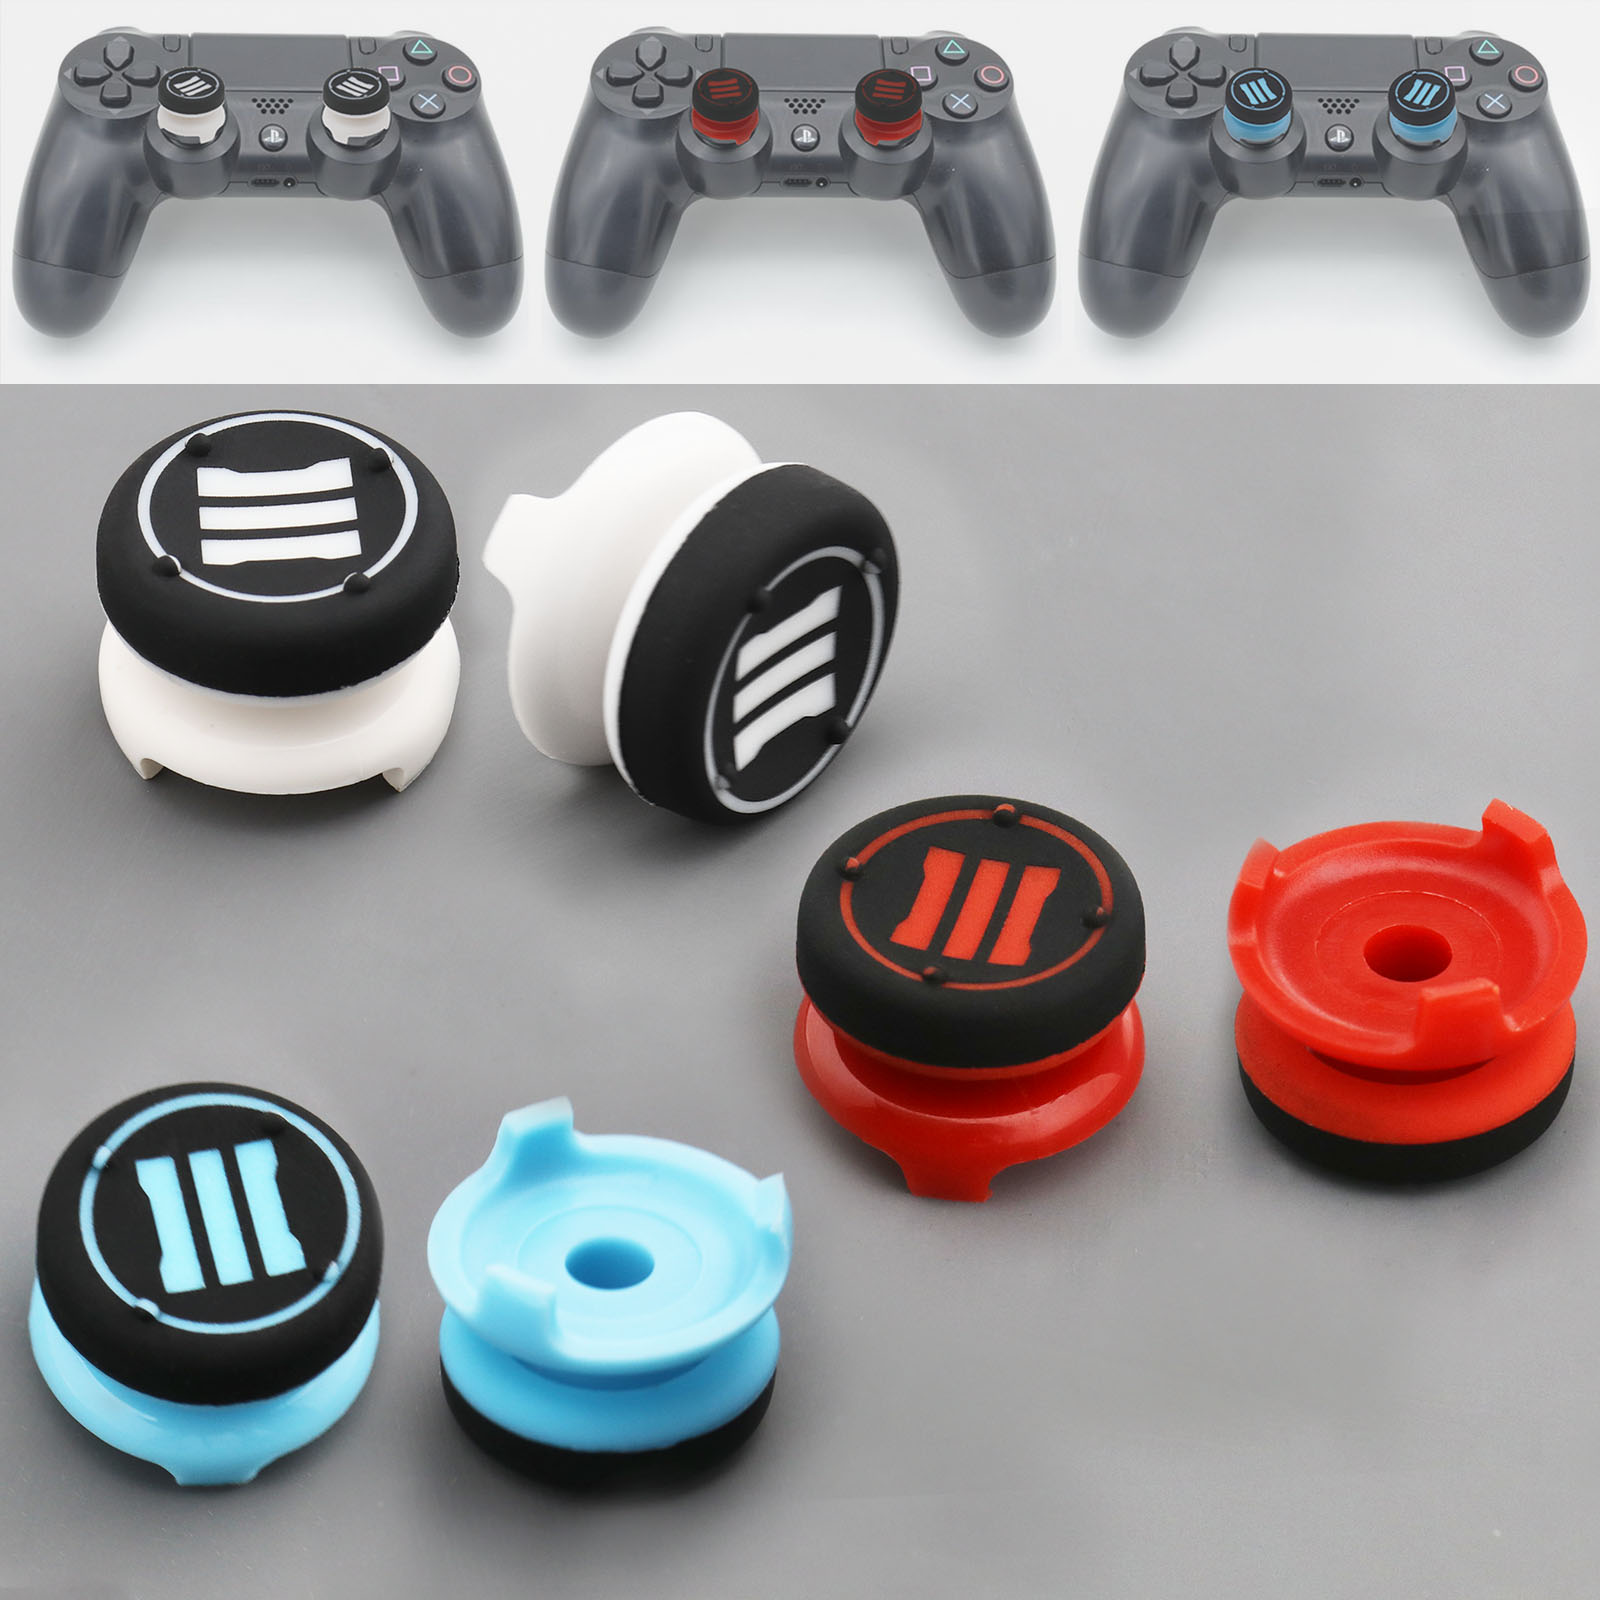 a7a33e48502 Details about 2x Thumb Grip Analog Stick Extender Tall Controller for PS4 Xbox  360 PS3 Ones